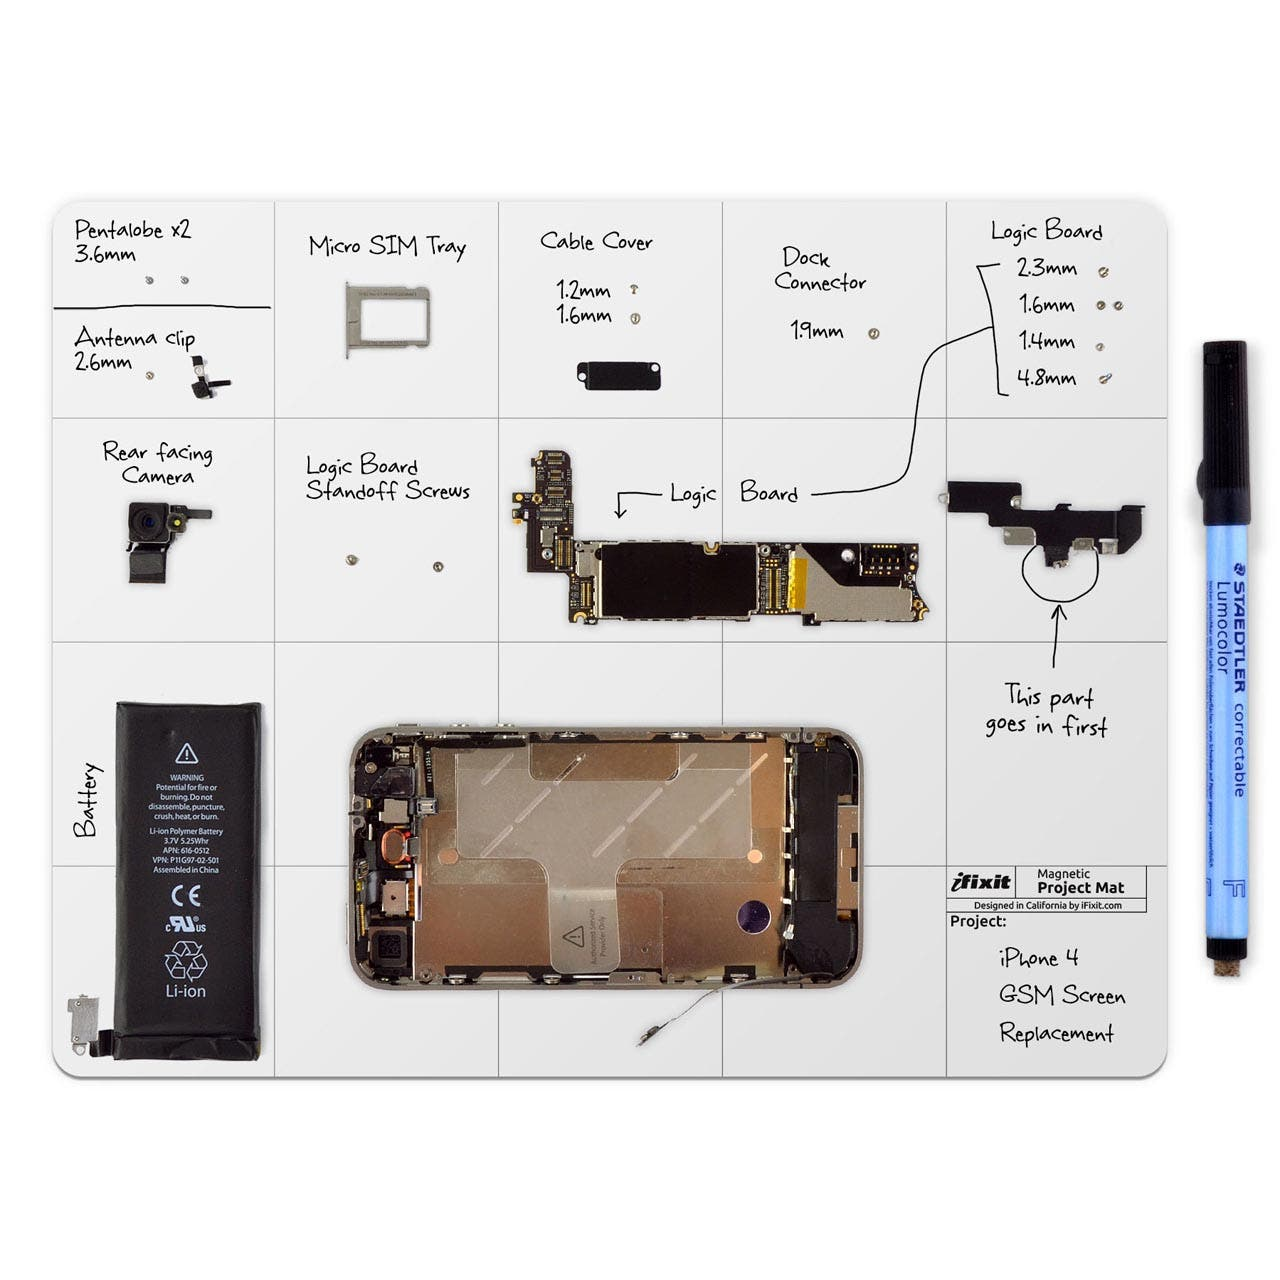 Review Ifixit Magnetic Project Mat Pro Pocketpc Ch